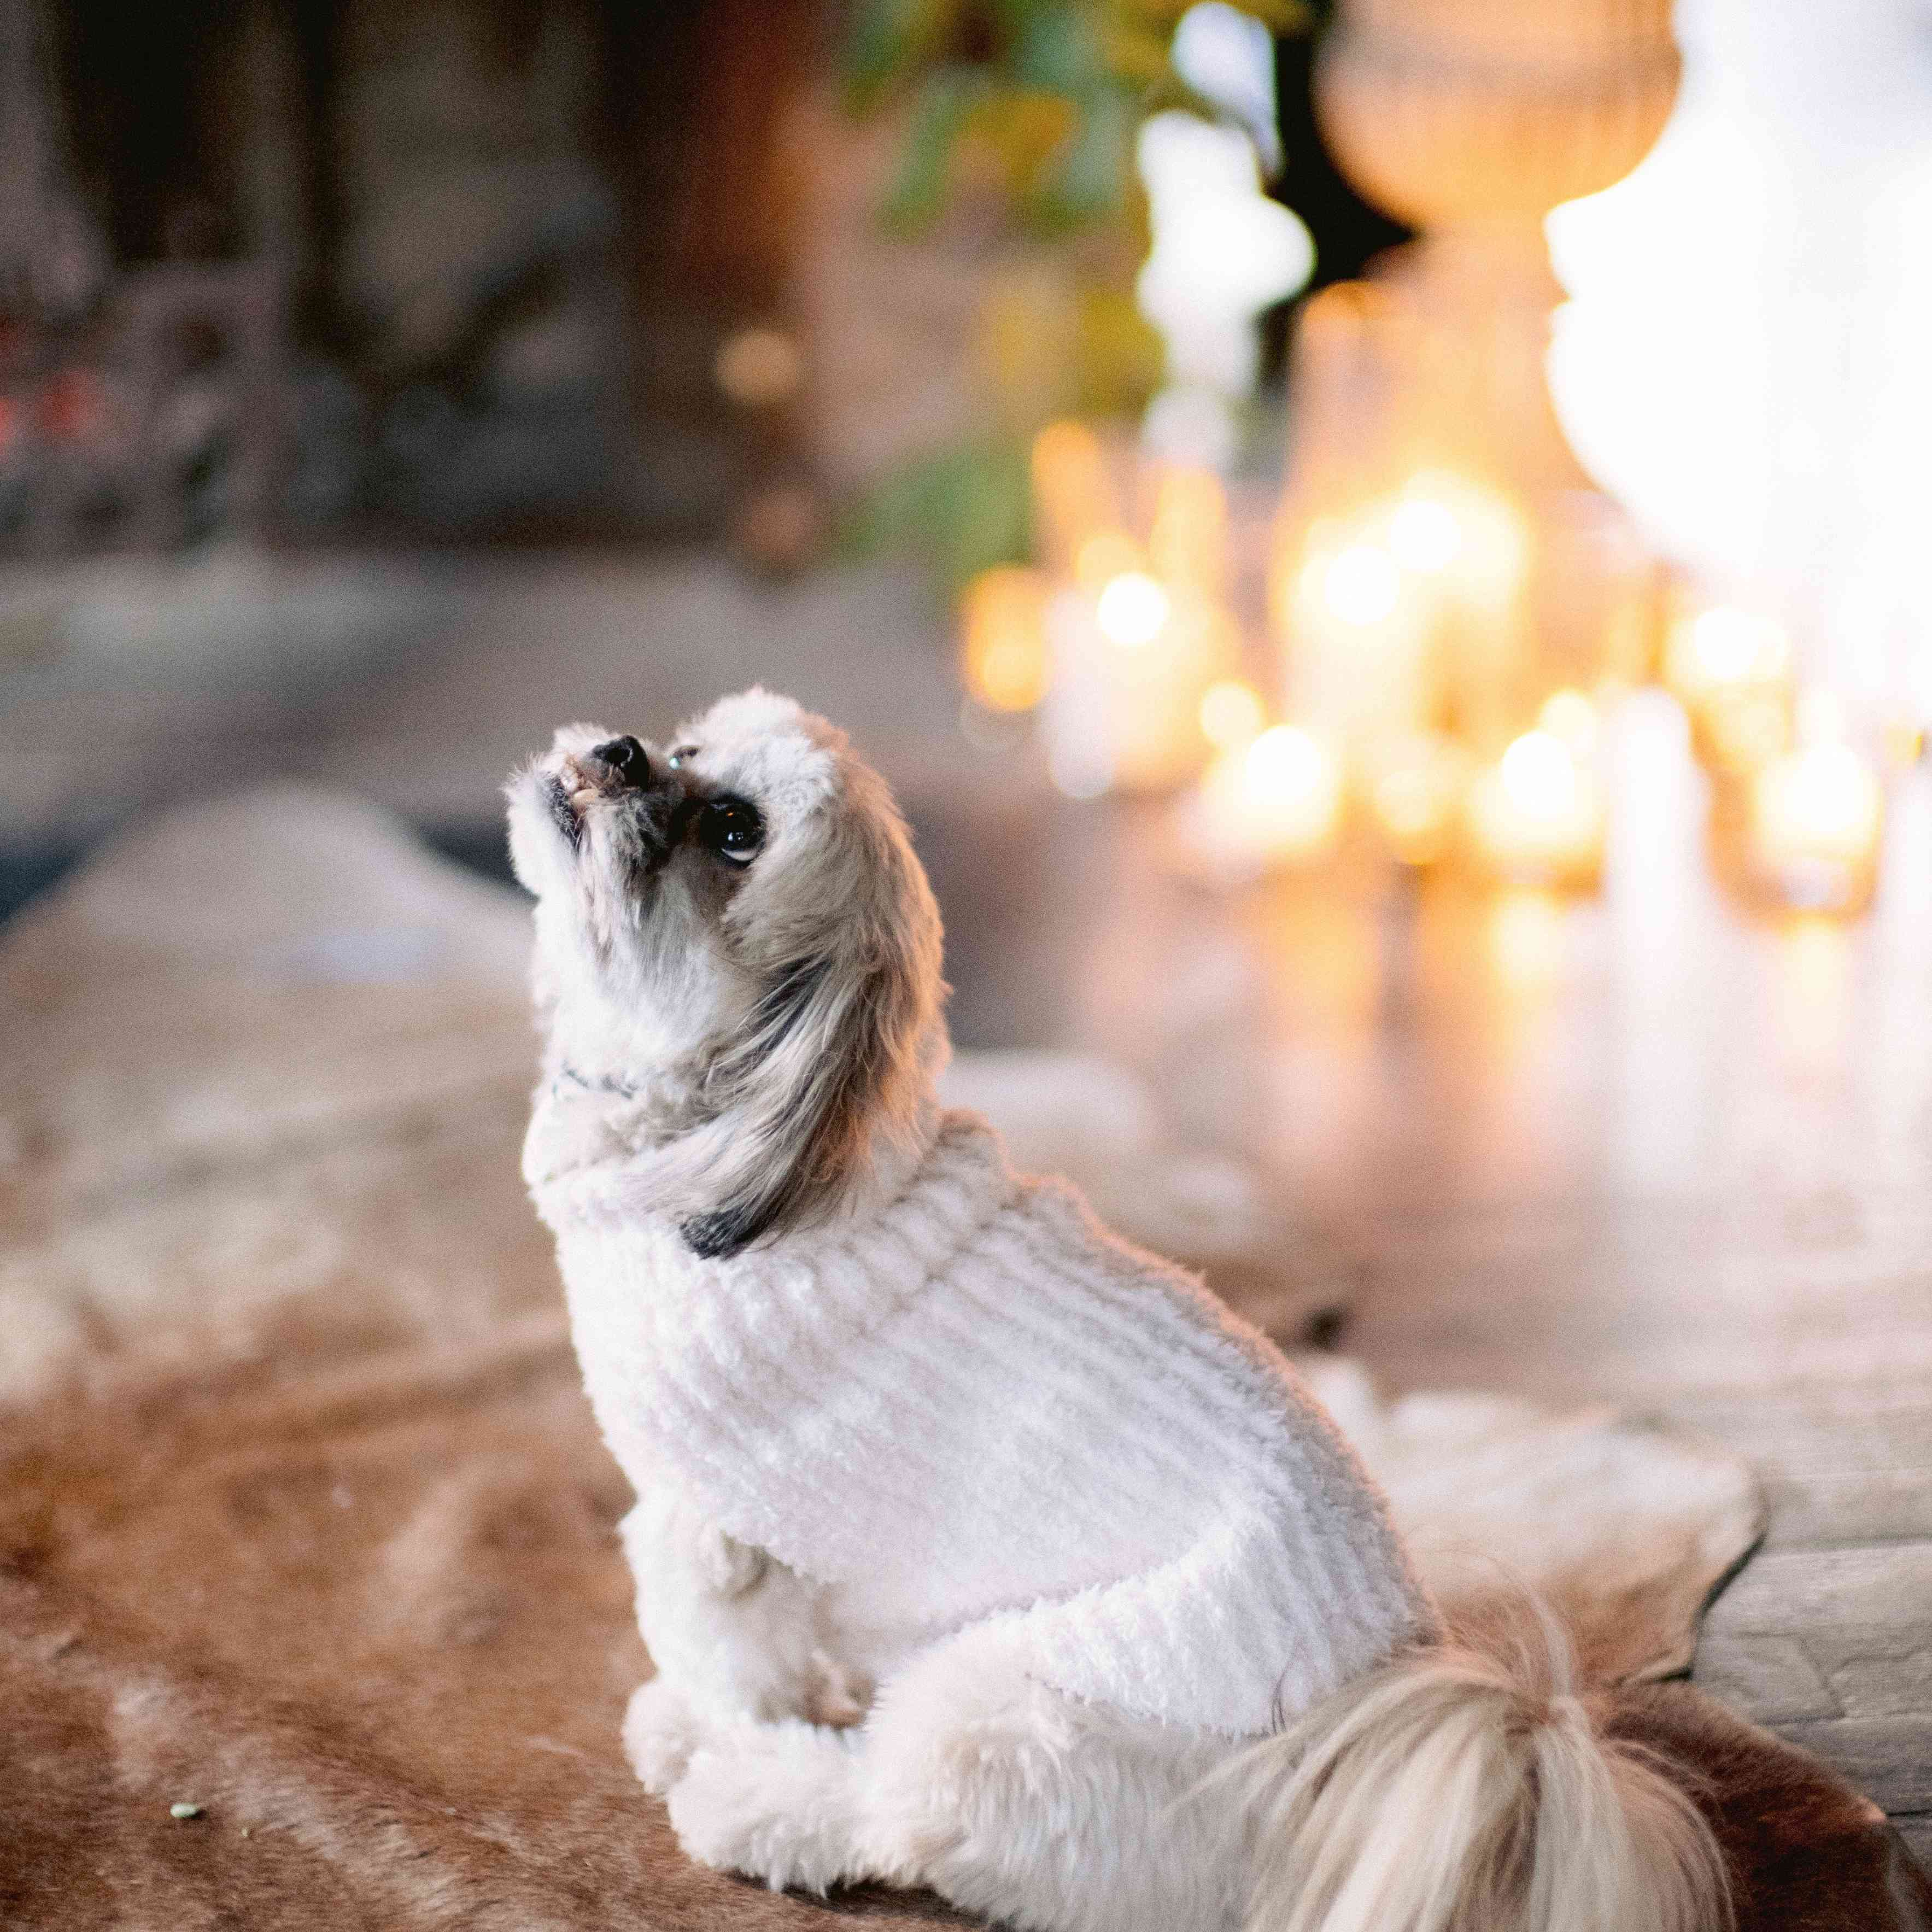 Dog dressed in white knit sweater